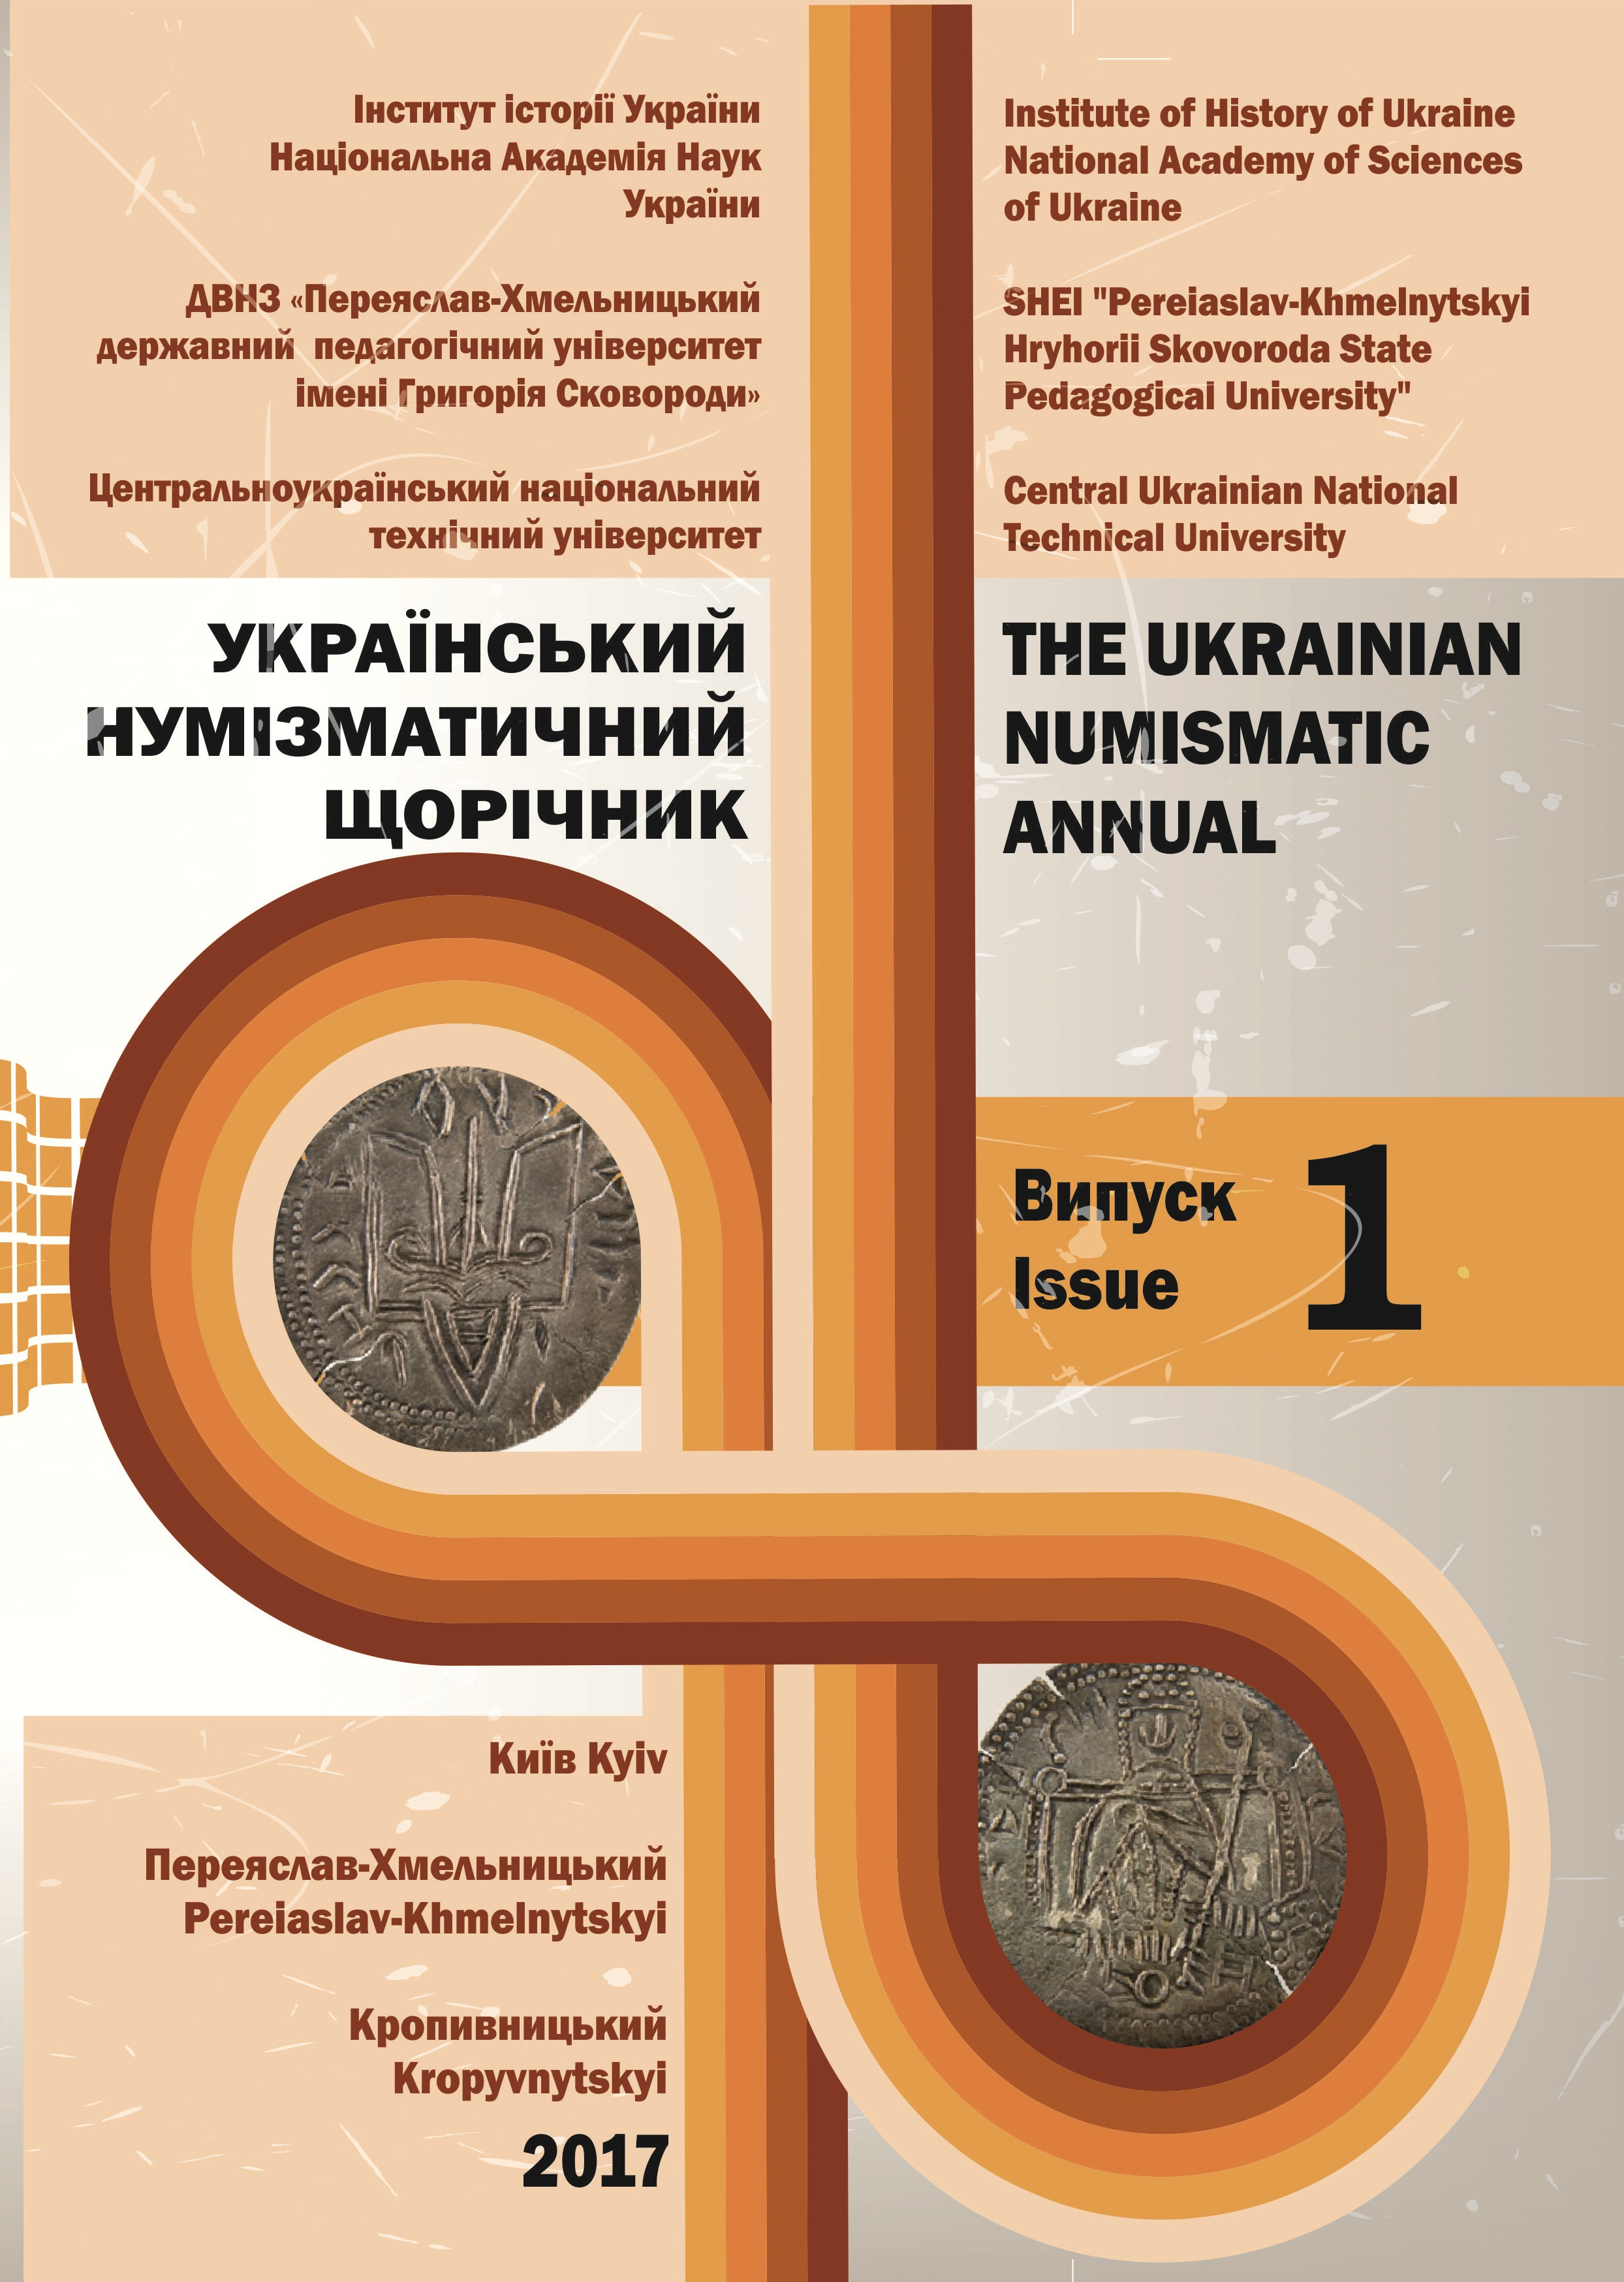 Once more on the«Hoard»from cherniyevo. «The hoard of a pilgrim to the holy land», Or just phantasy? Cover Image